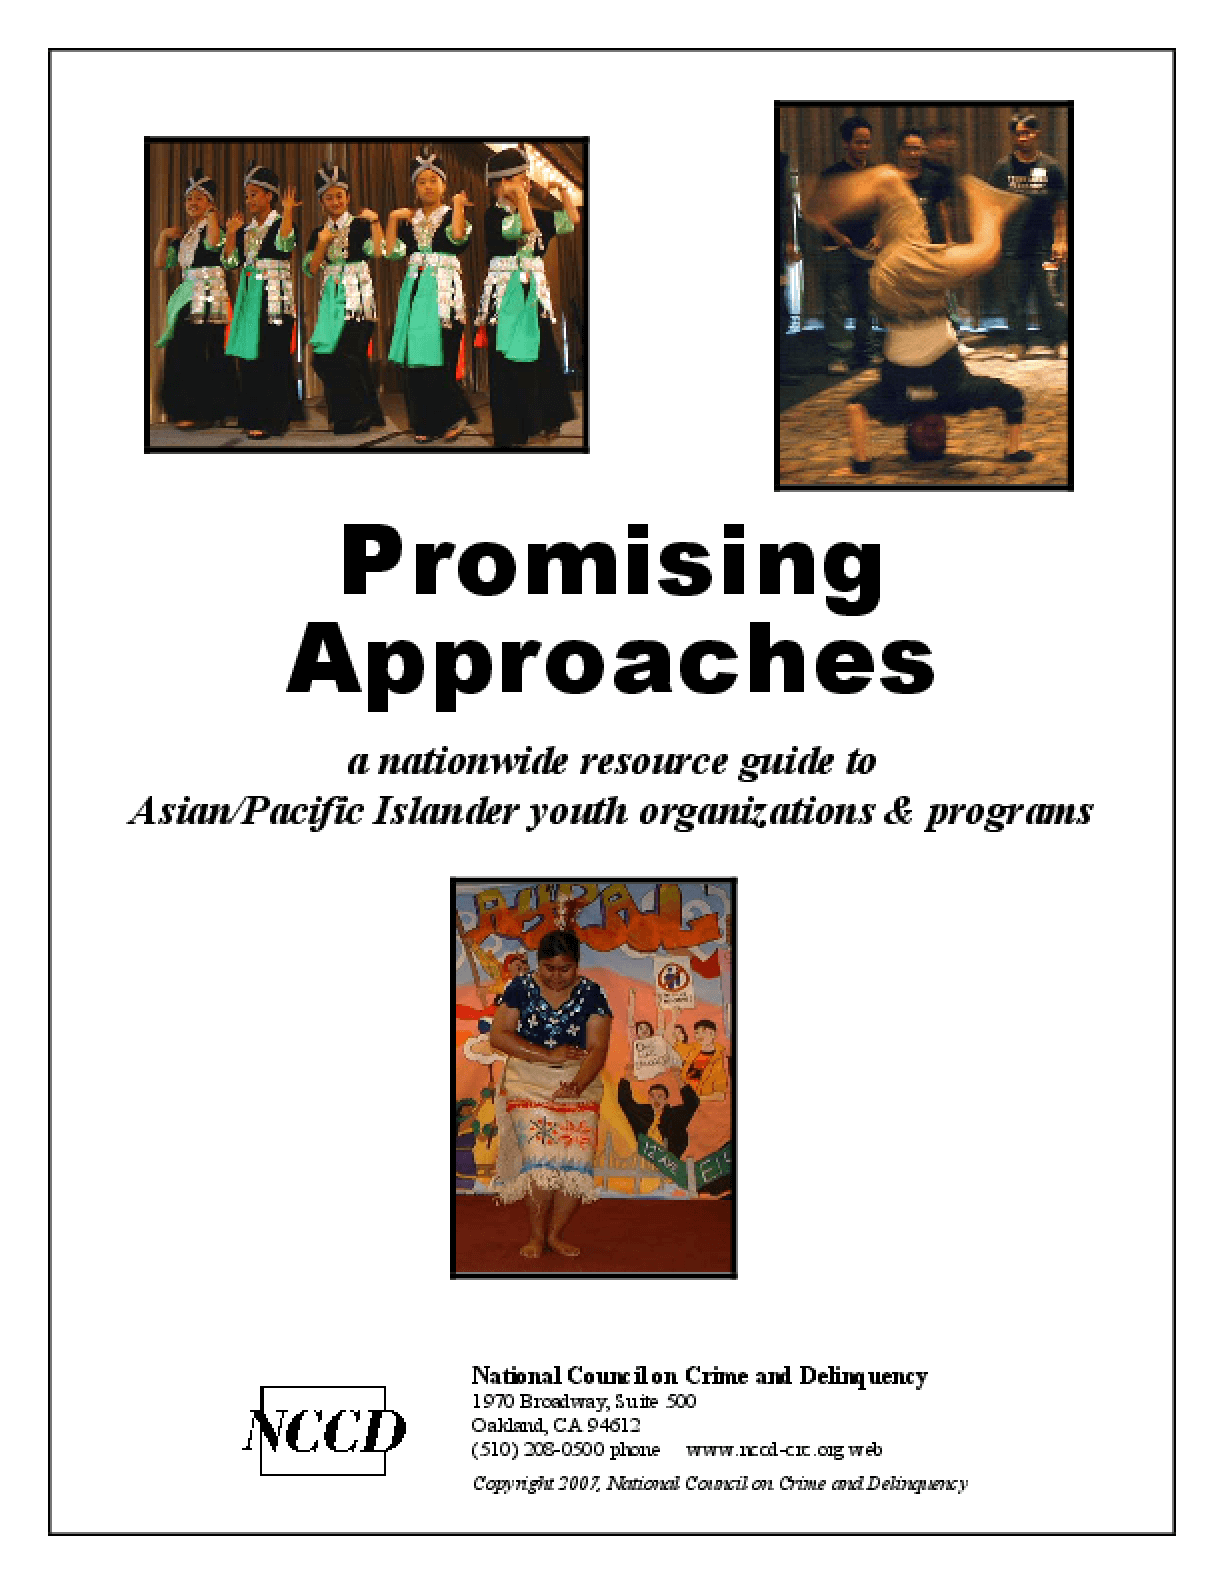 Promising Approaches: A Nationwide Resource Guide to Asian/Pacific Islander Youth Organizations and Programs